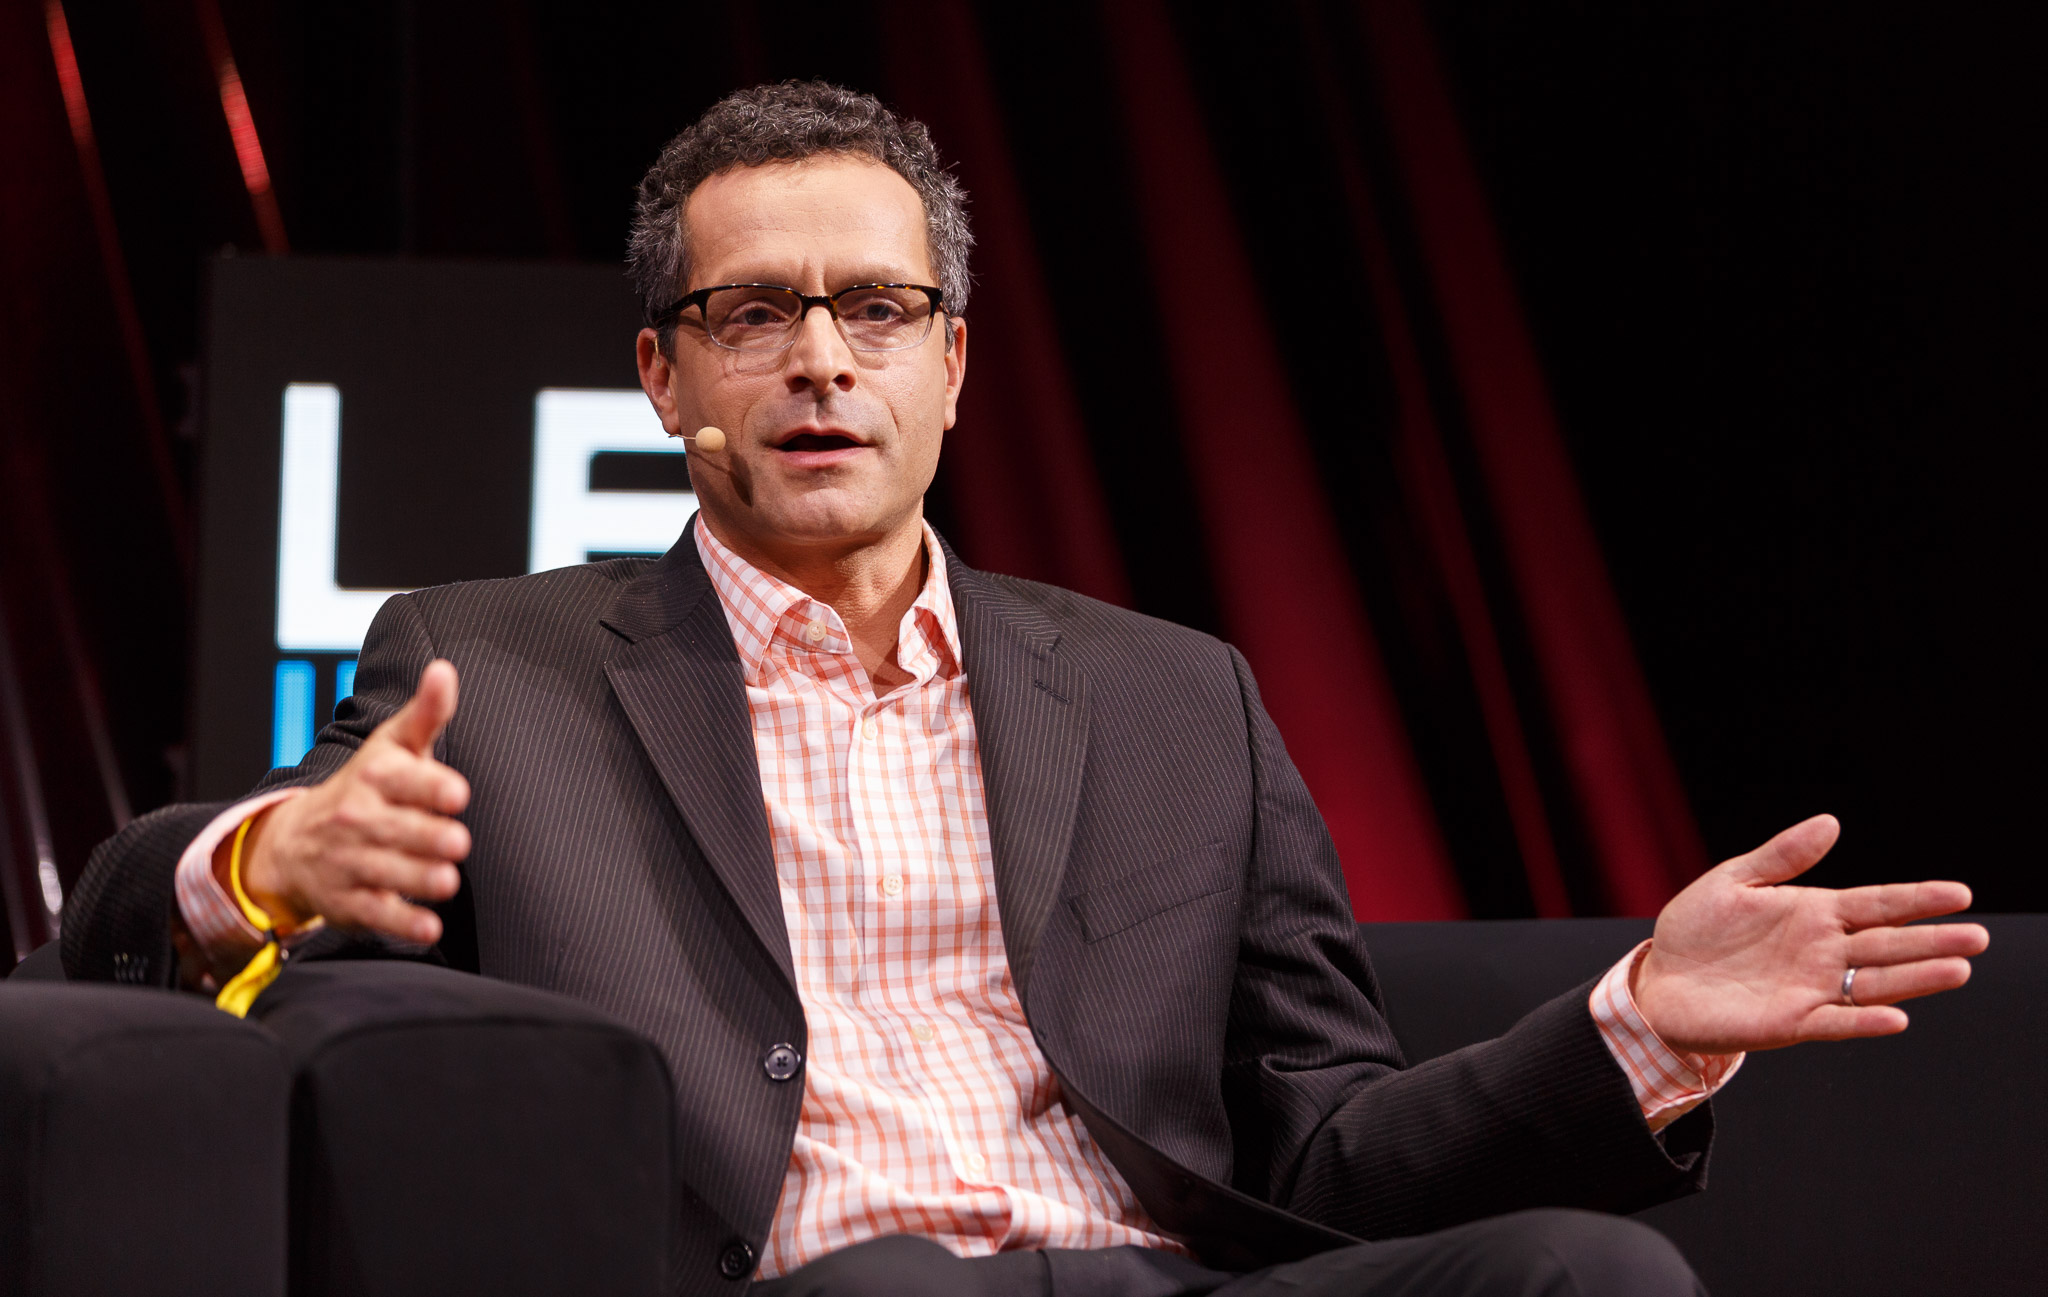 Bradley Horowitz, Google's vice president of product, introduces a new version of the company's Hangouts communication app at the LeWeb conference.